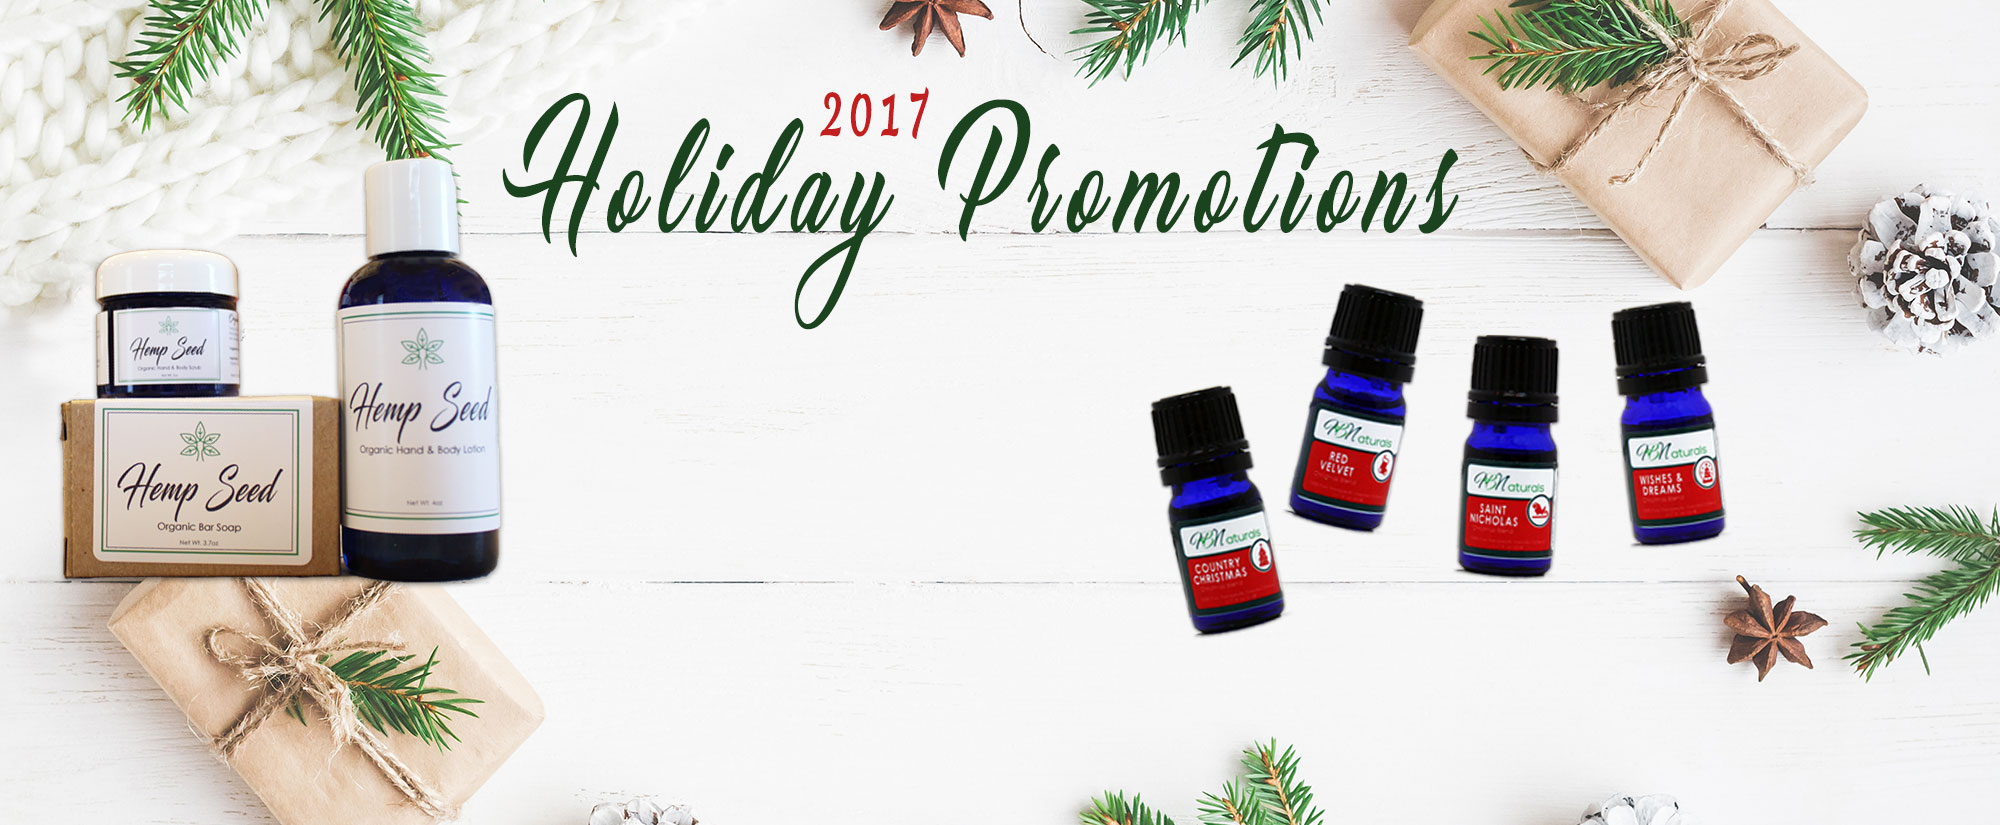 2017 Holiday Promotions